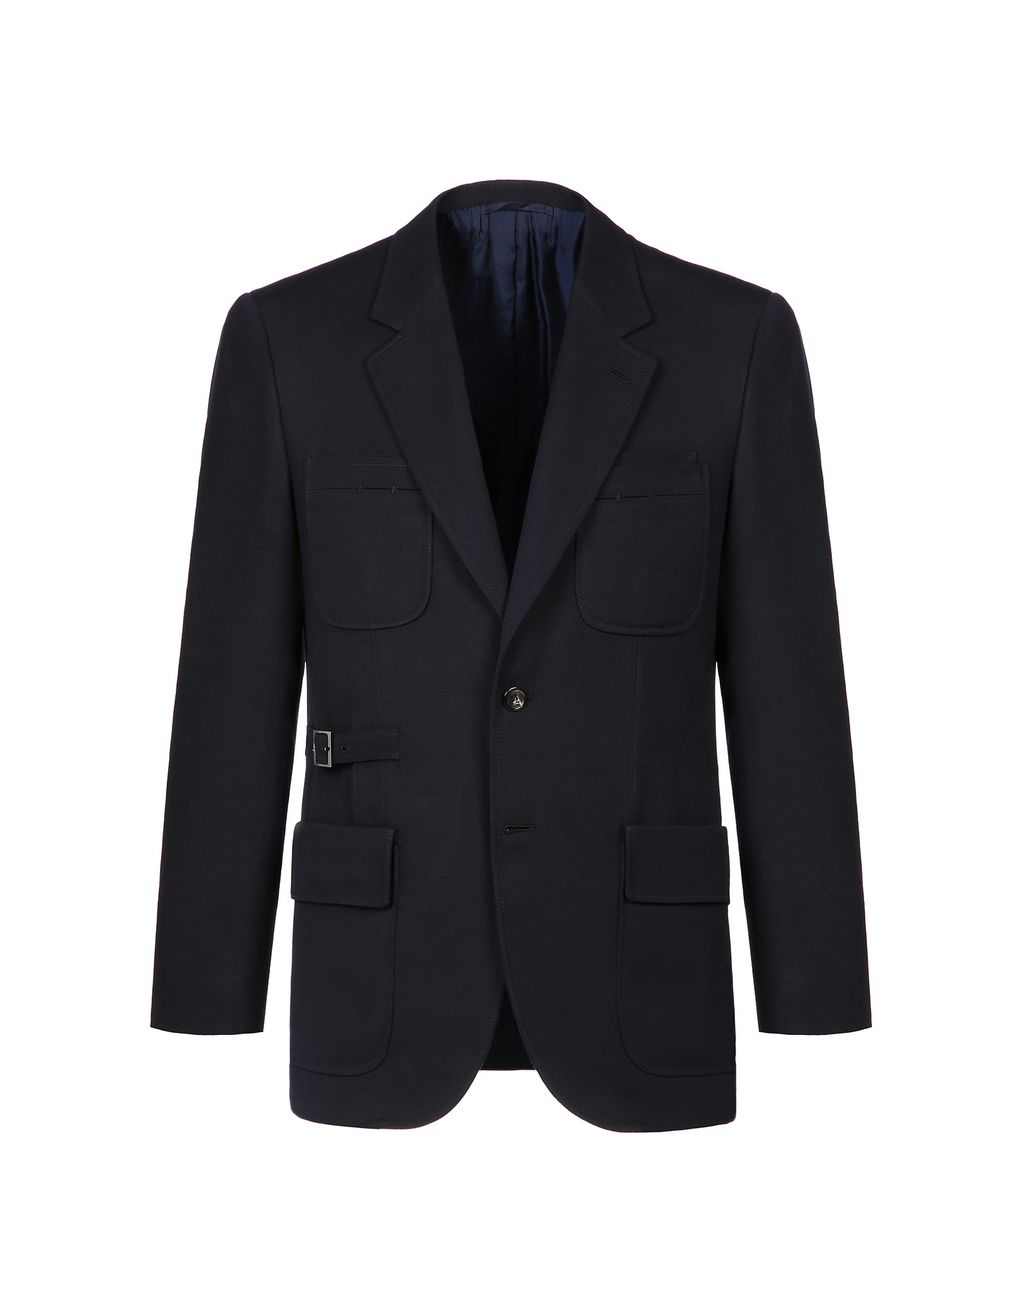 BRIONI Veste New Travel bleu marine Formal Jacket Homme f